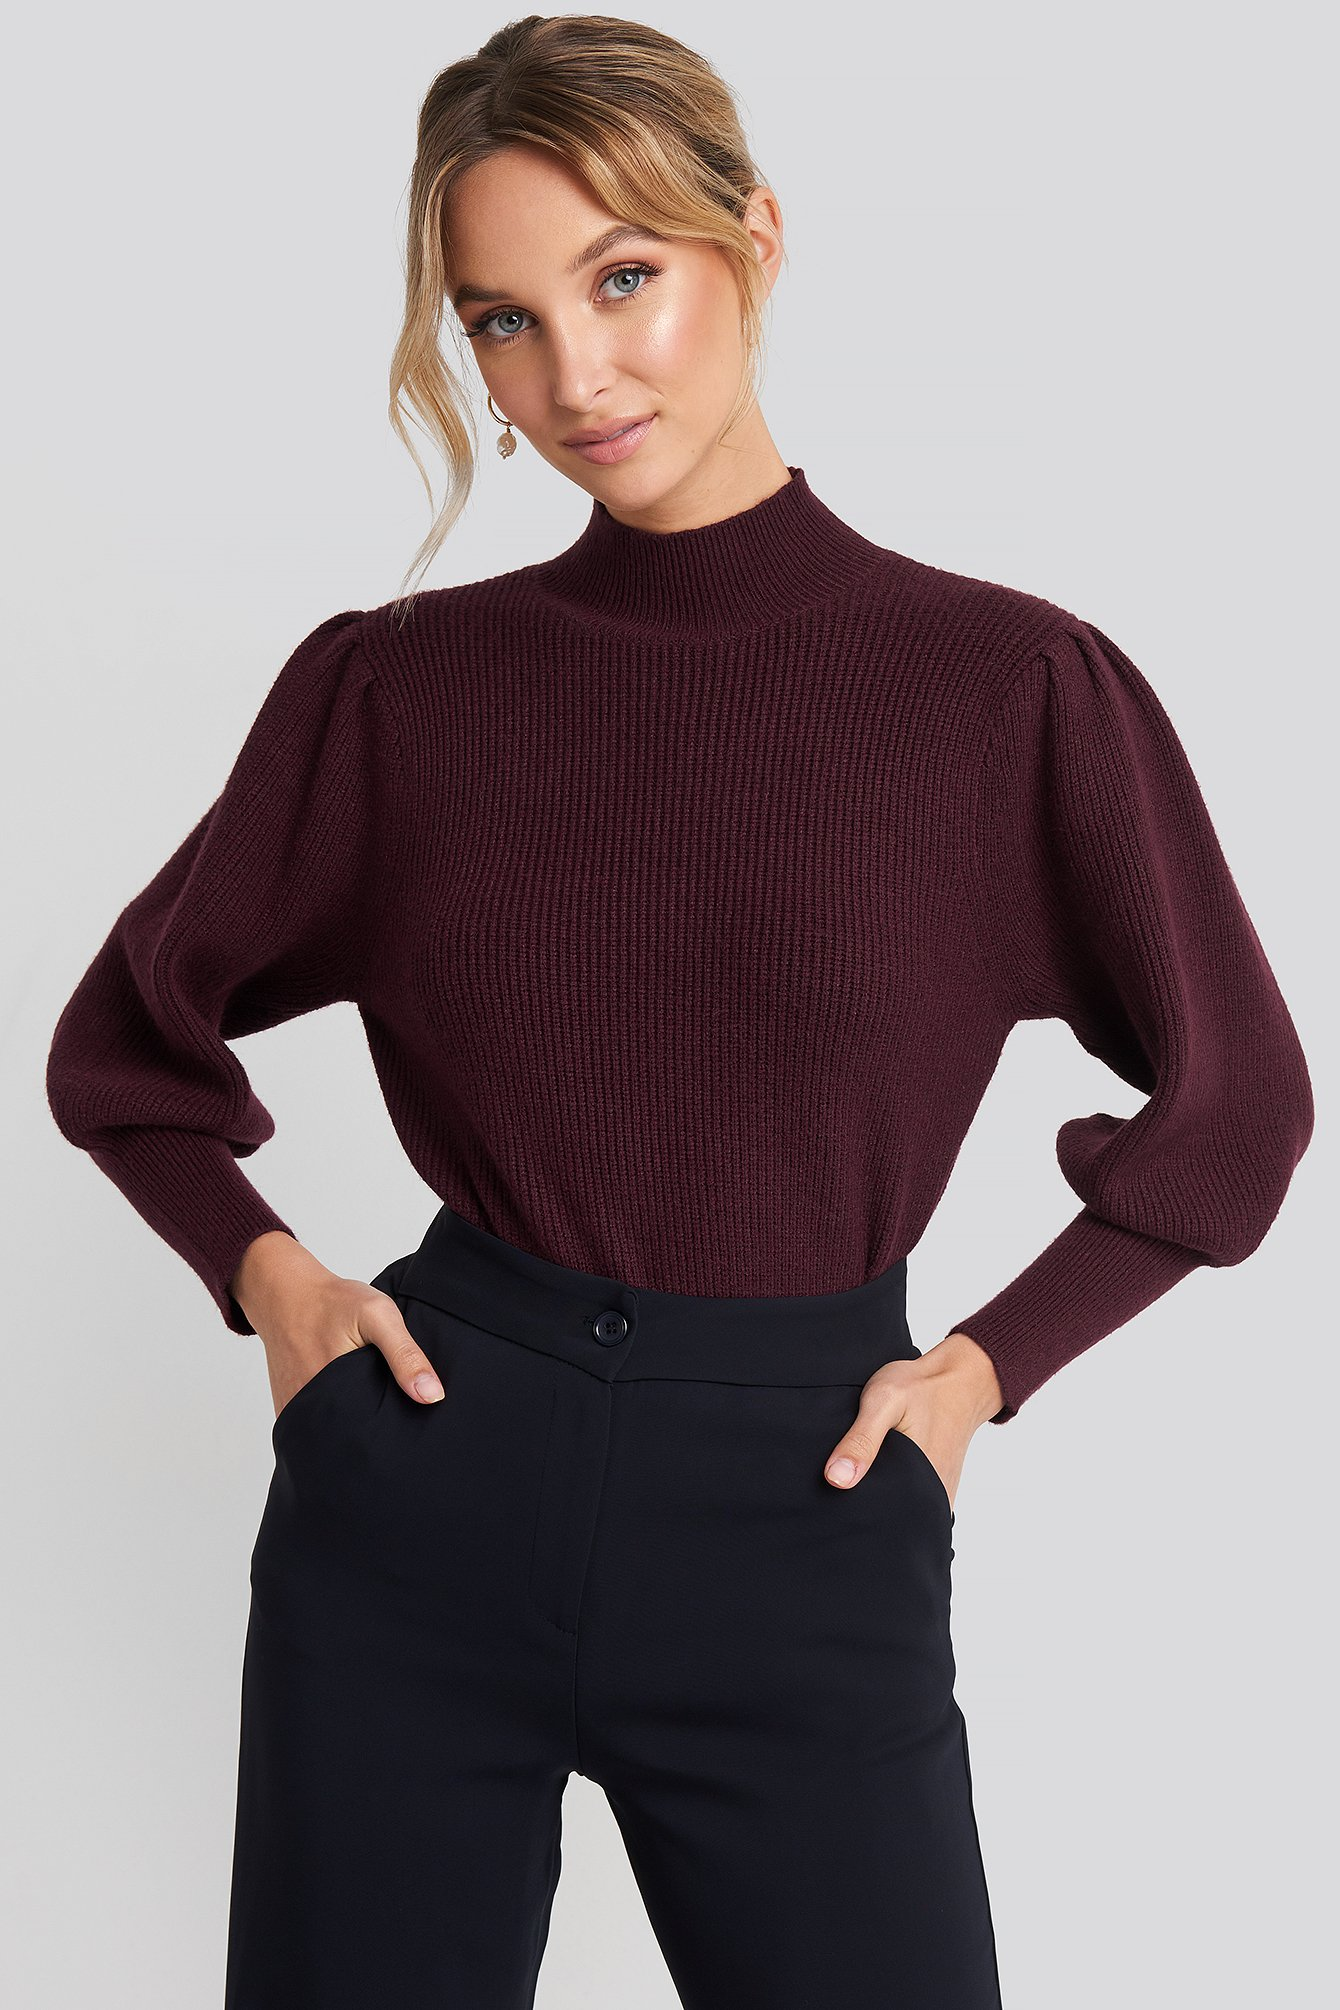 Wide Cuff Balloon Sleeve Knitted Sweater Rouge by Na Kd